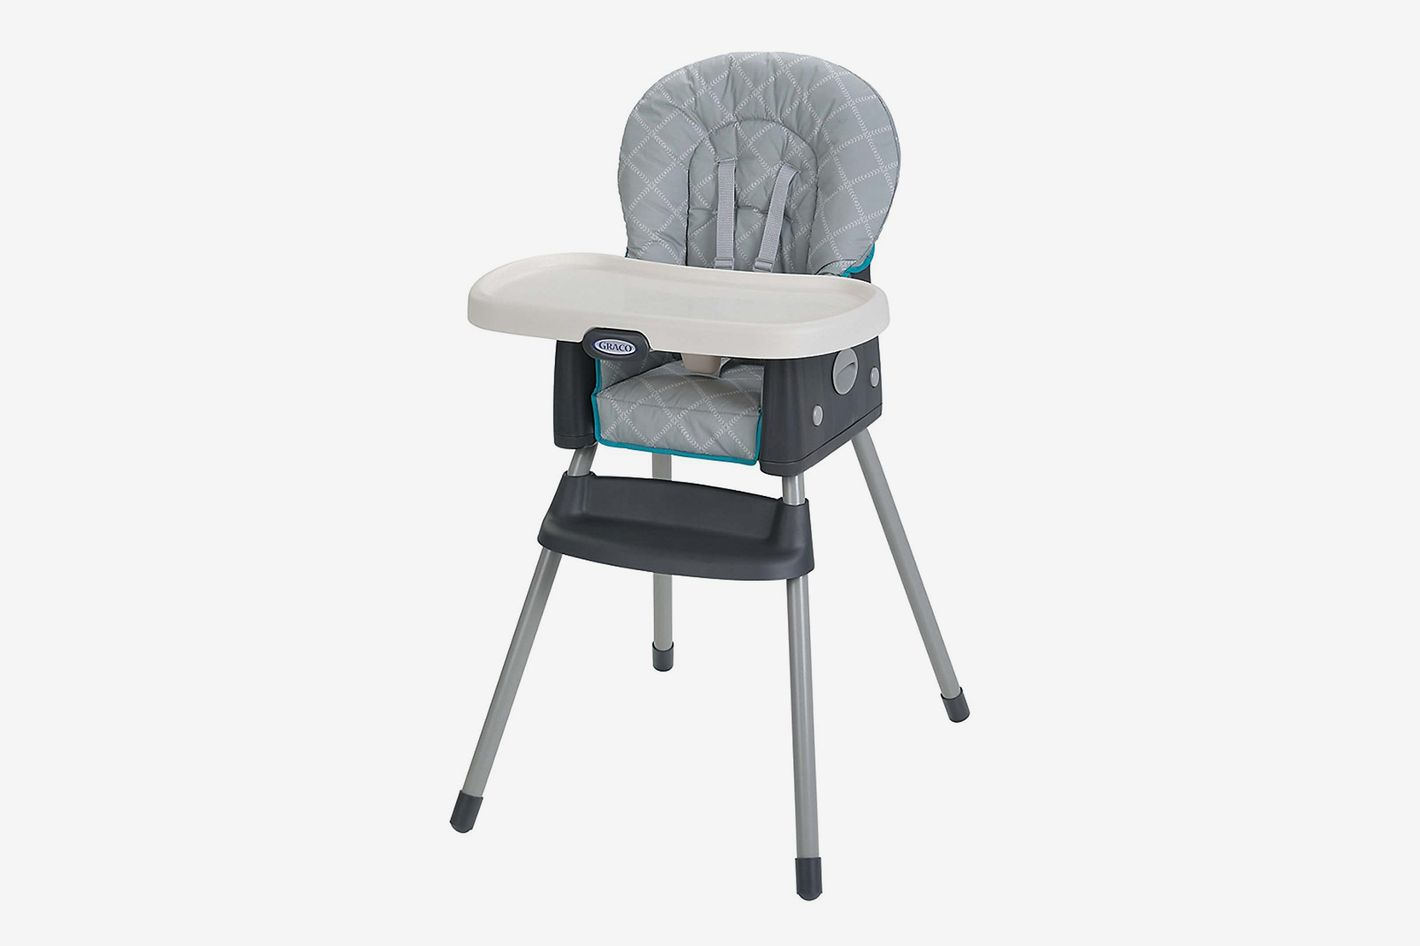 Graco SimpleSwitch 2-in-1 High Chair